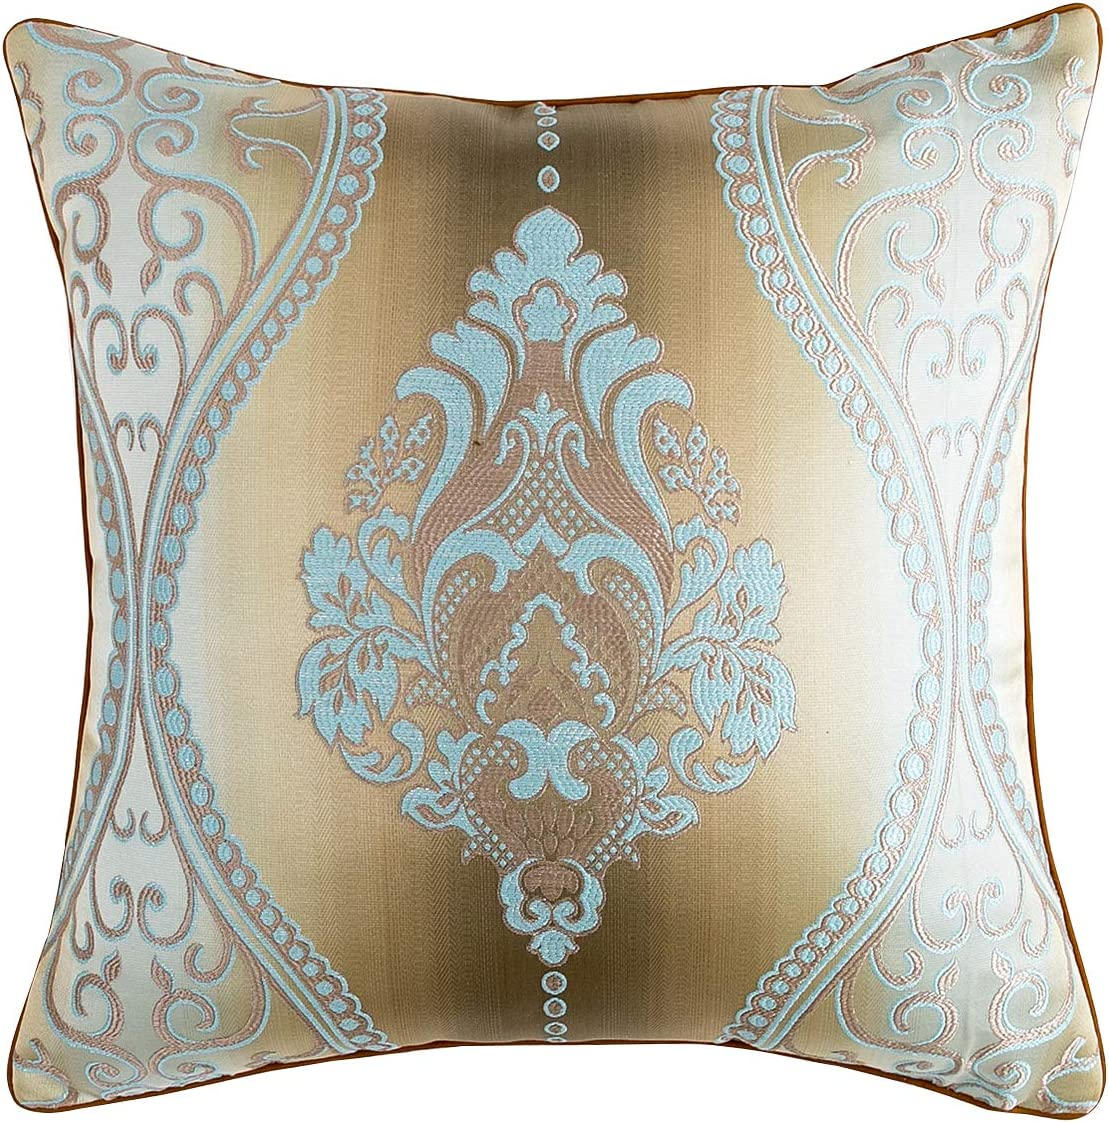 KOI BEAUTY Throw Pillow Covers Decorations Throw Pillow Cover Cushion Covers Pillowcase Home Decor European Style Art Jacquard Square Pillow Covers 20 X 20 inches Set of 2